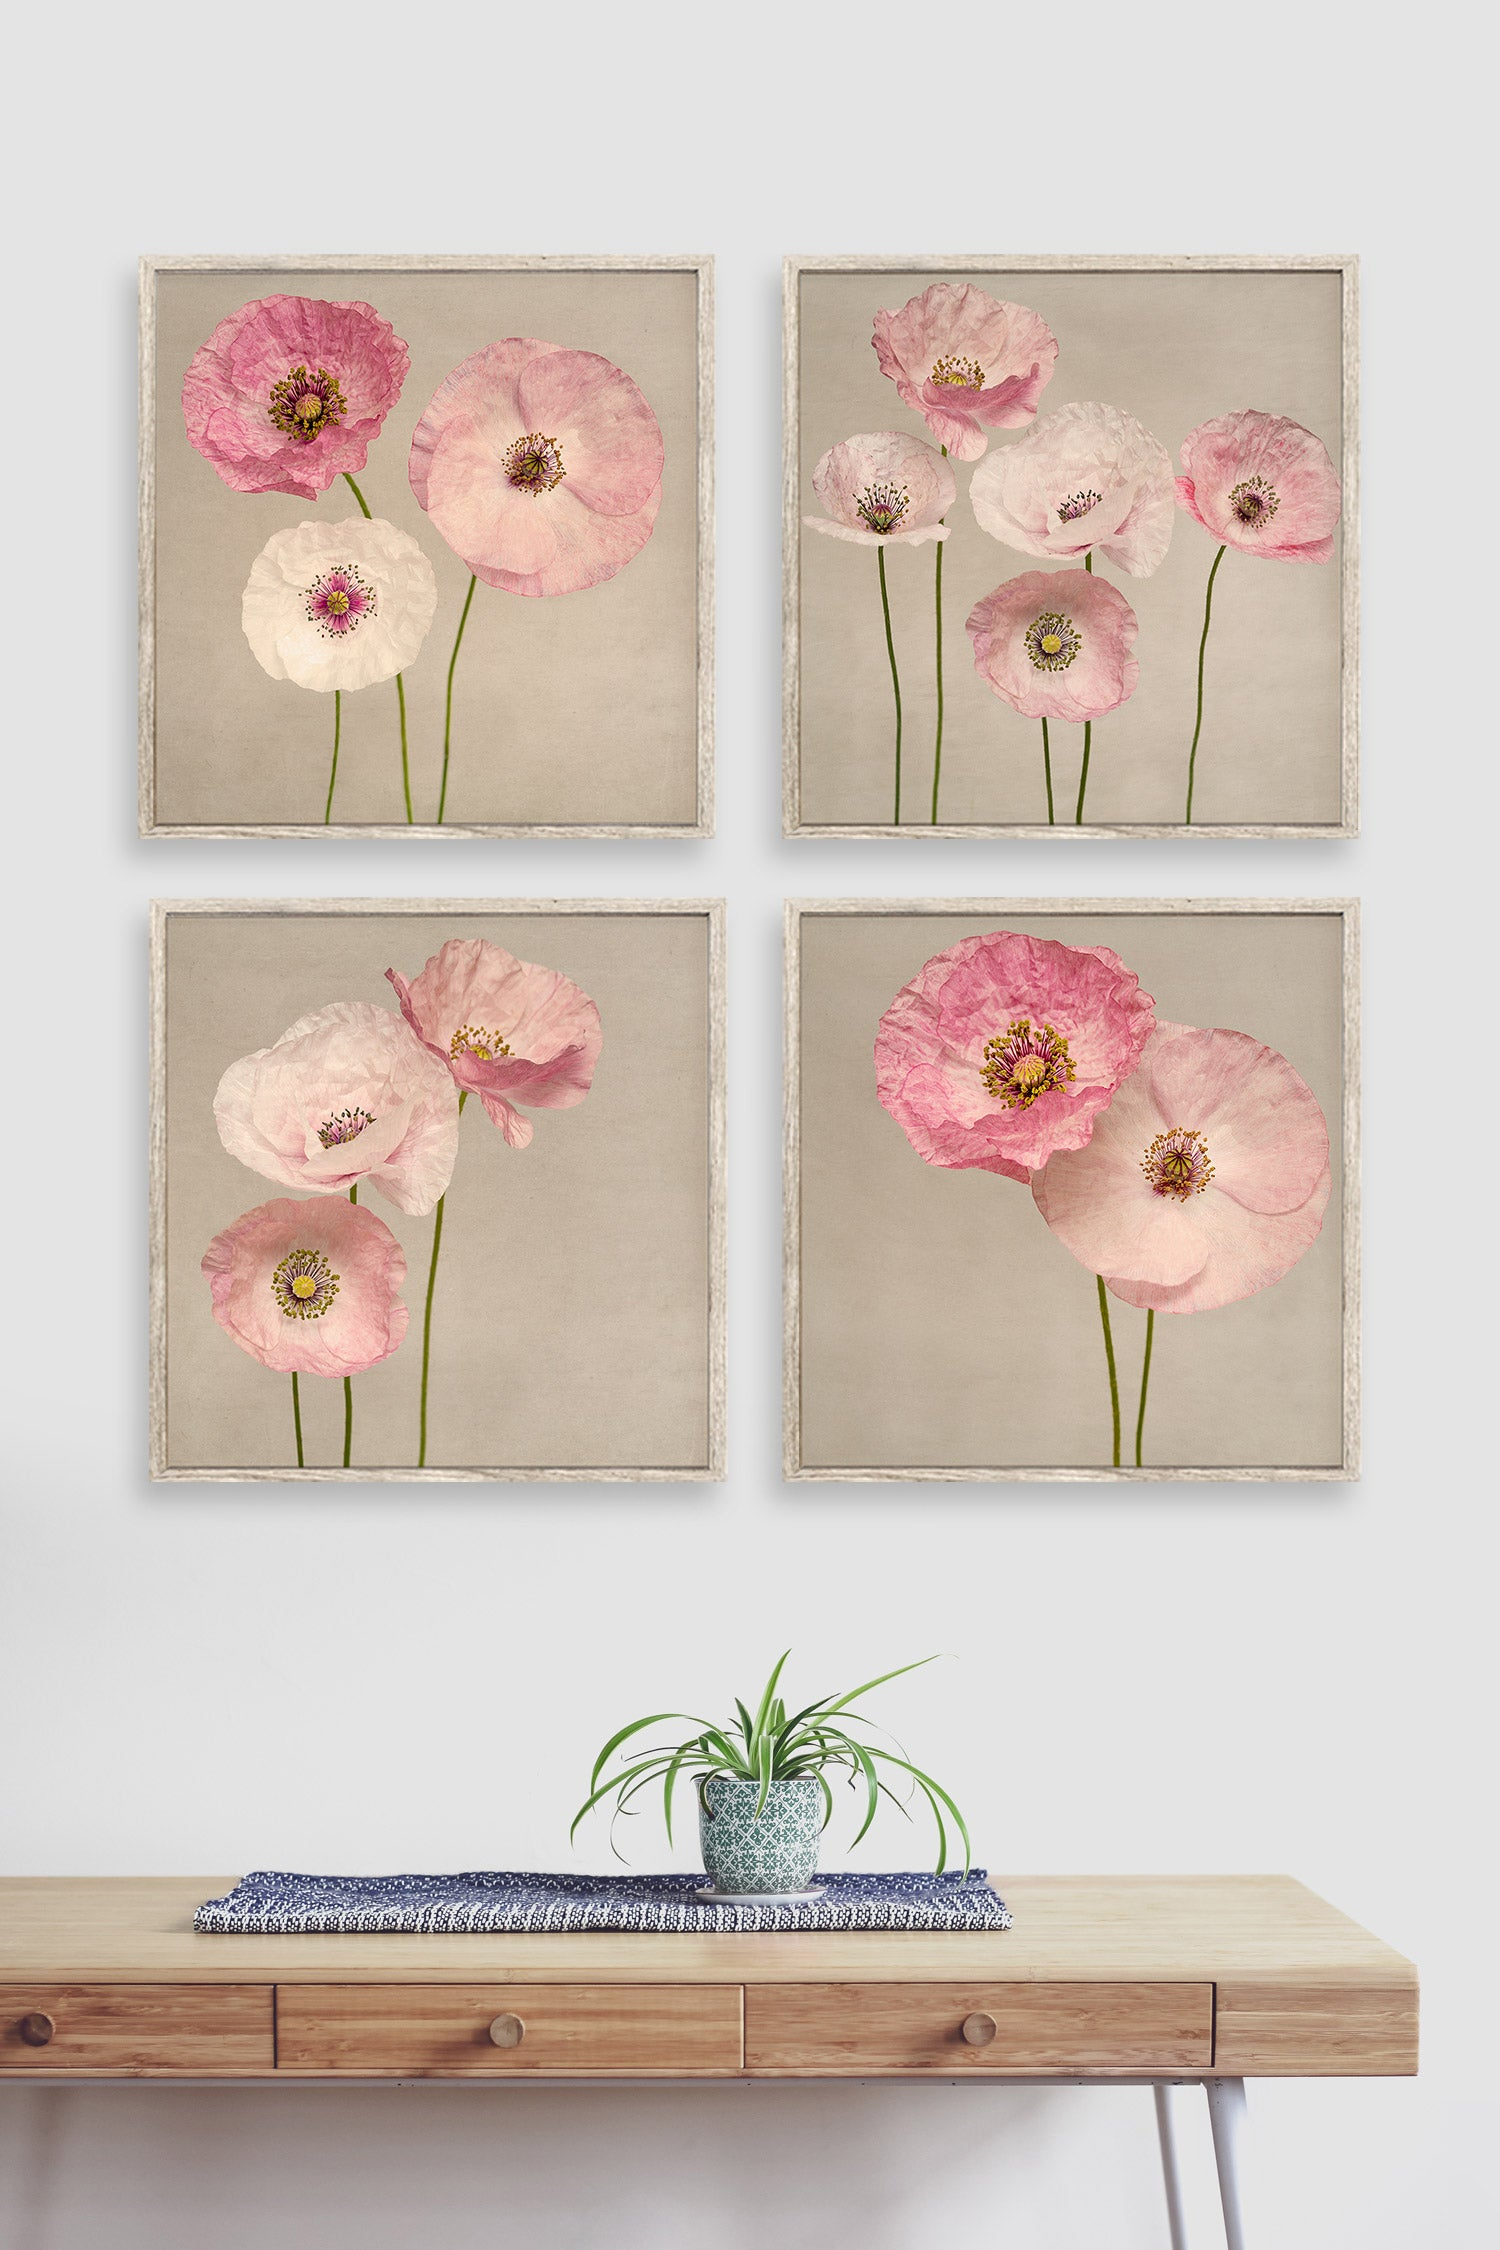 Set of 4 photographs of pink shirley poppies